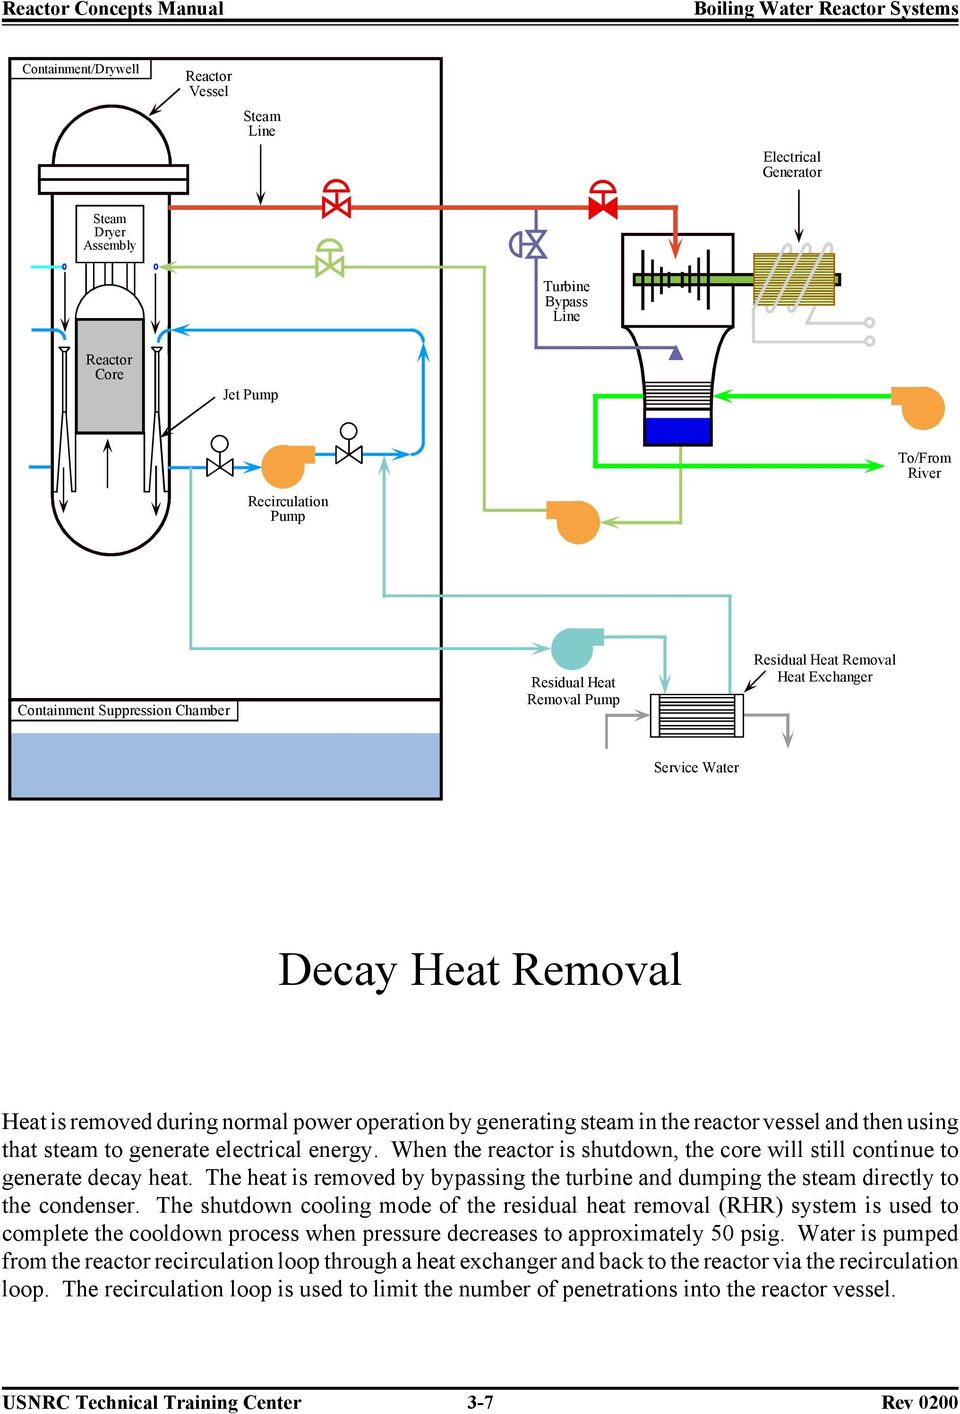 When the reactor is shutdown, the core will still continue to generate decay heat. The heat is removed by bypassing the turbine and dumping the steam directly to the condenser.